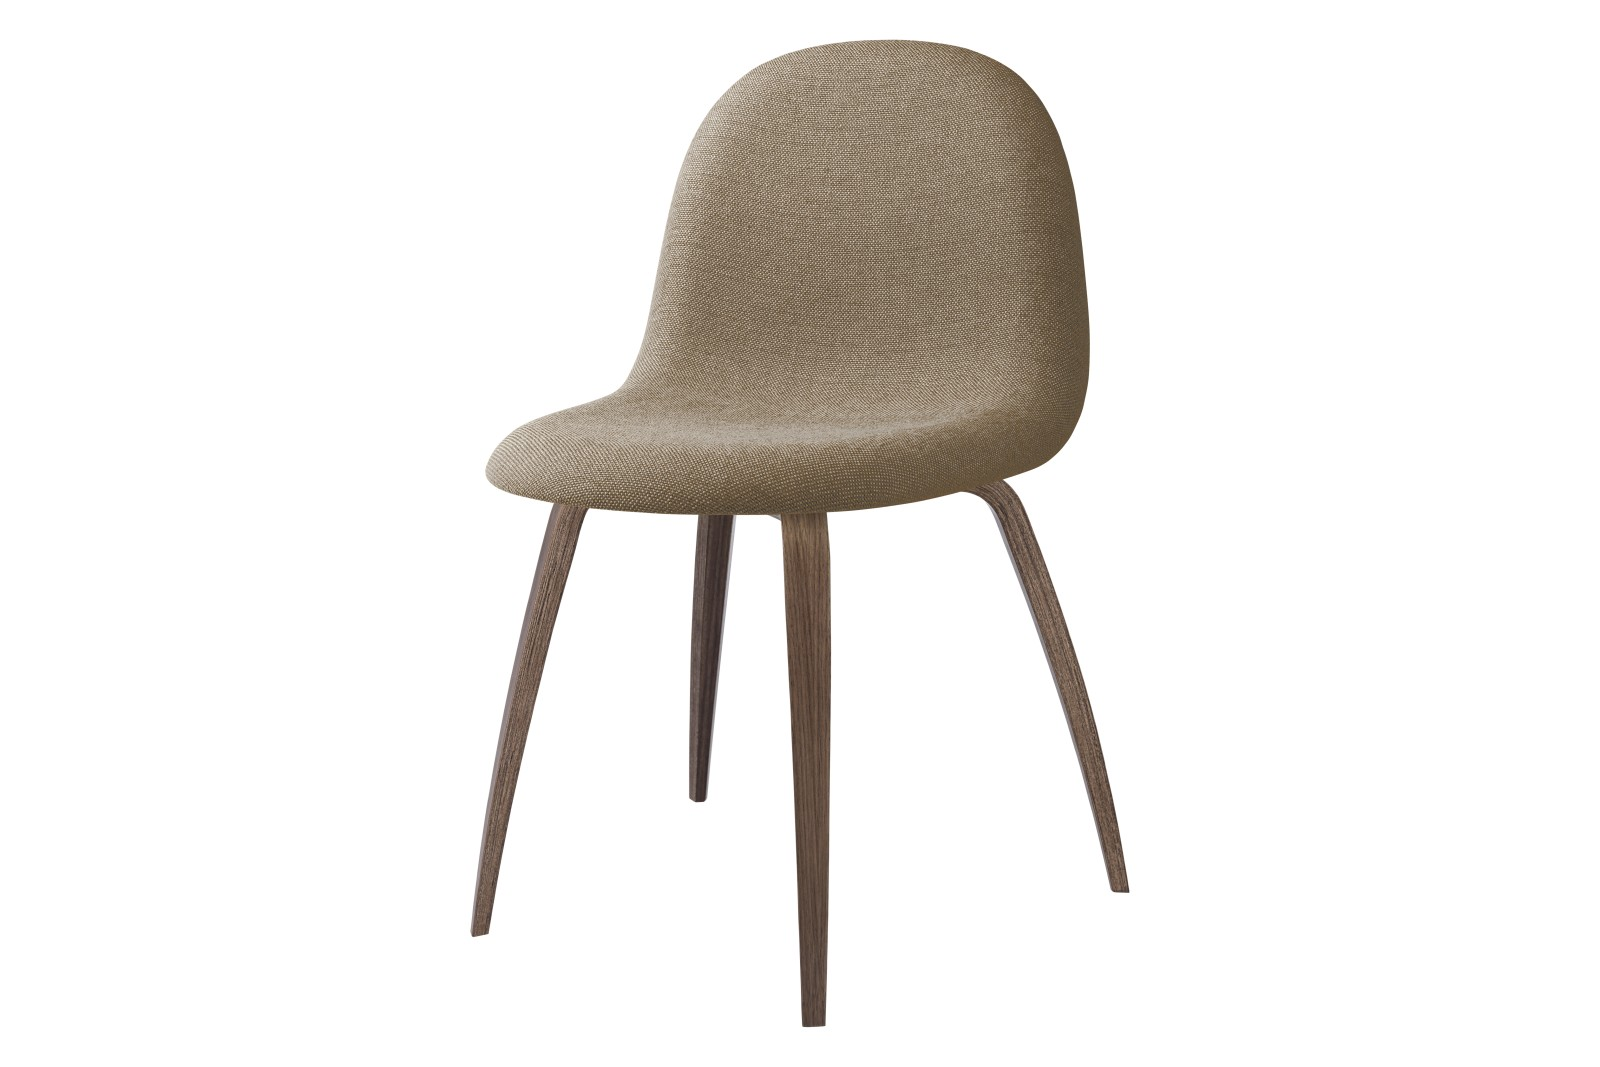 3D Dining Chair - Fully Upholstered, Wood Base Price Grp. 04, Gubi Wood American Walnut